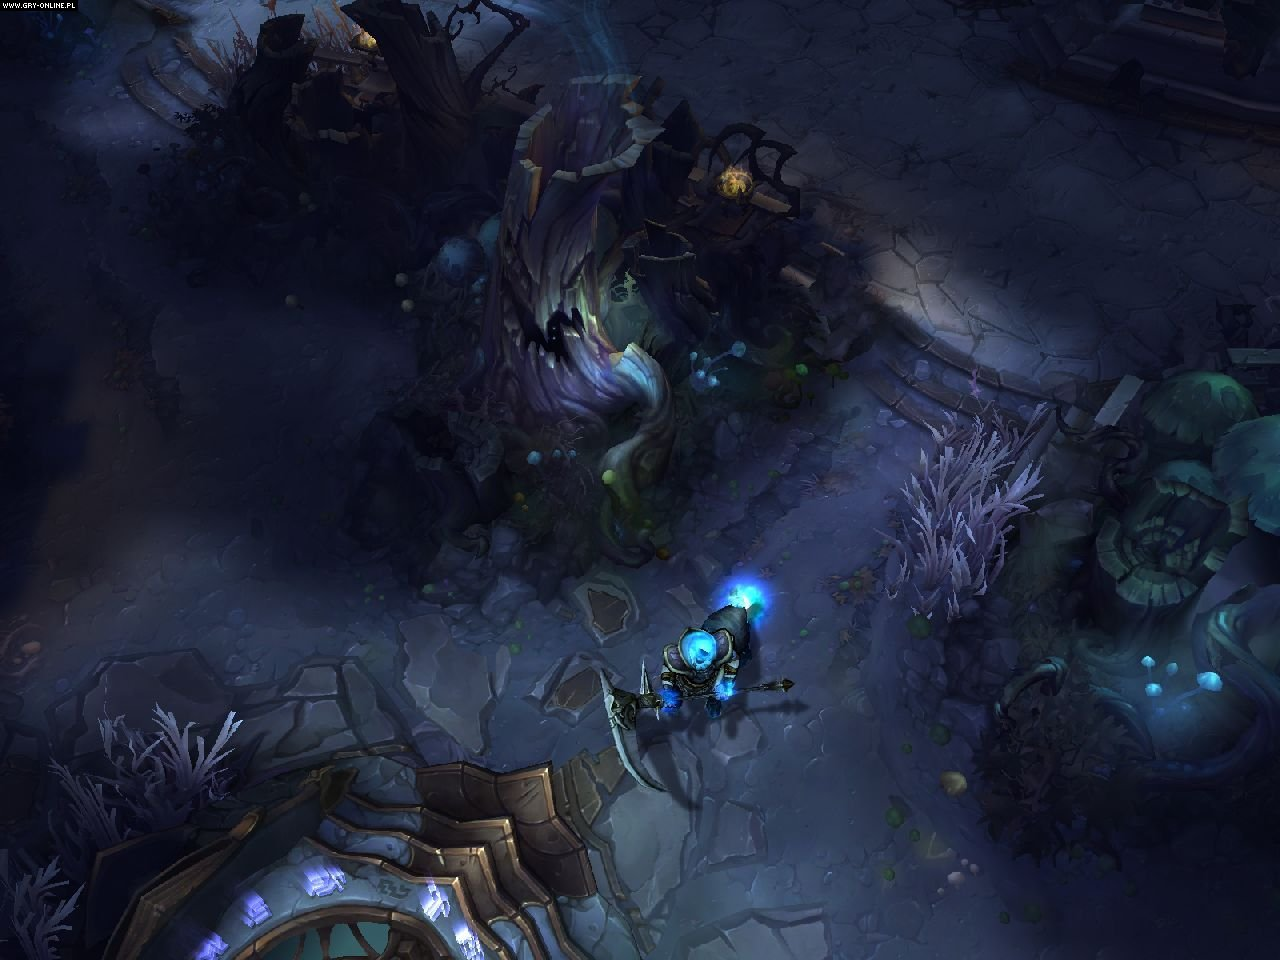 League of Legends PC Games Image 3/121, Riot Games